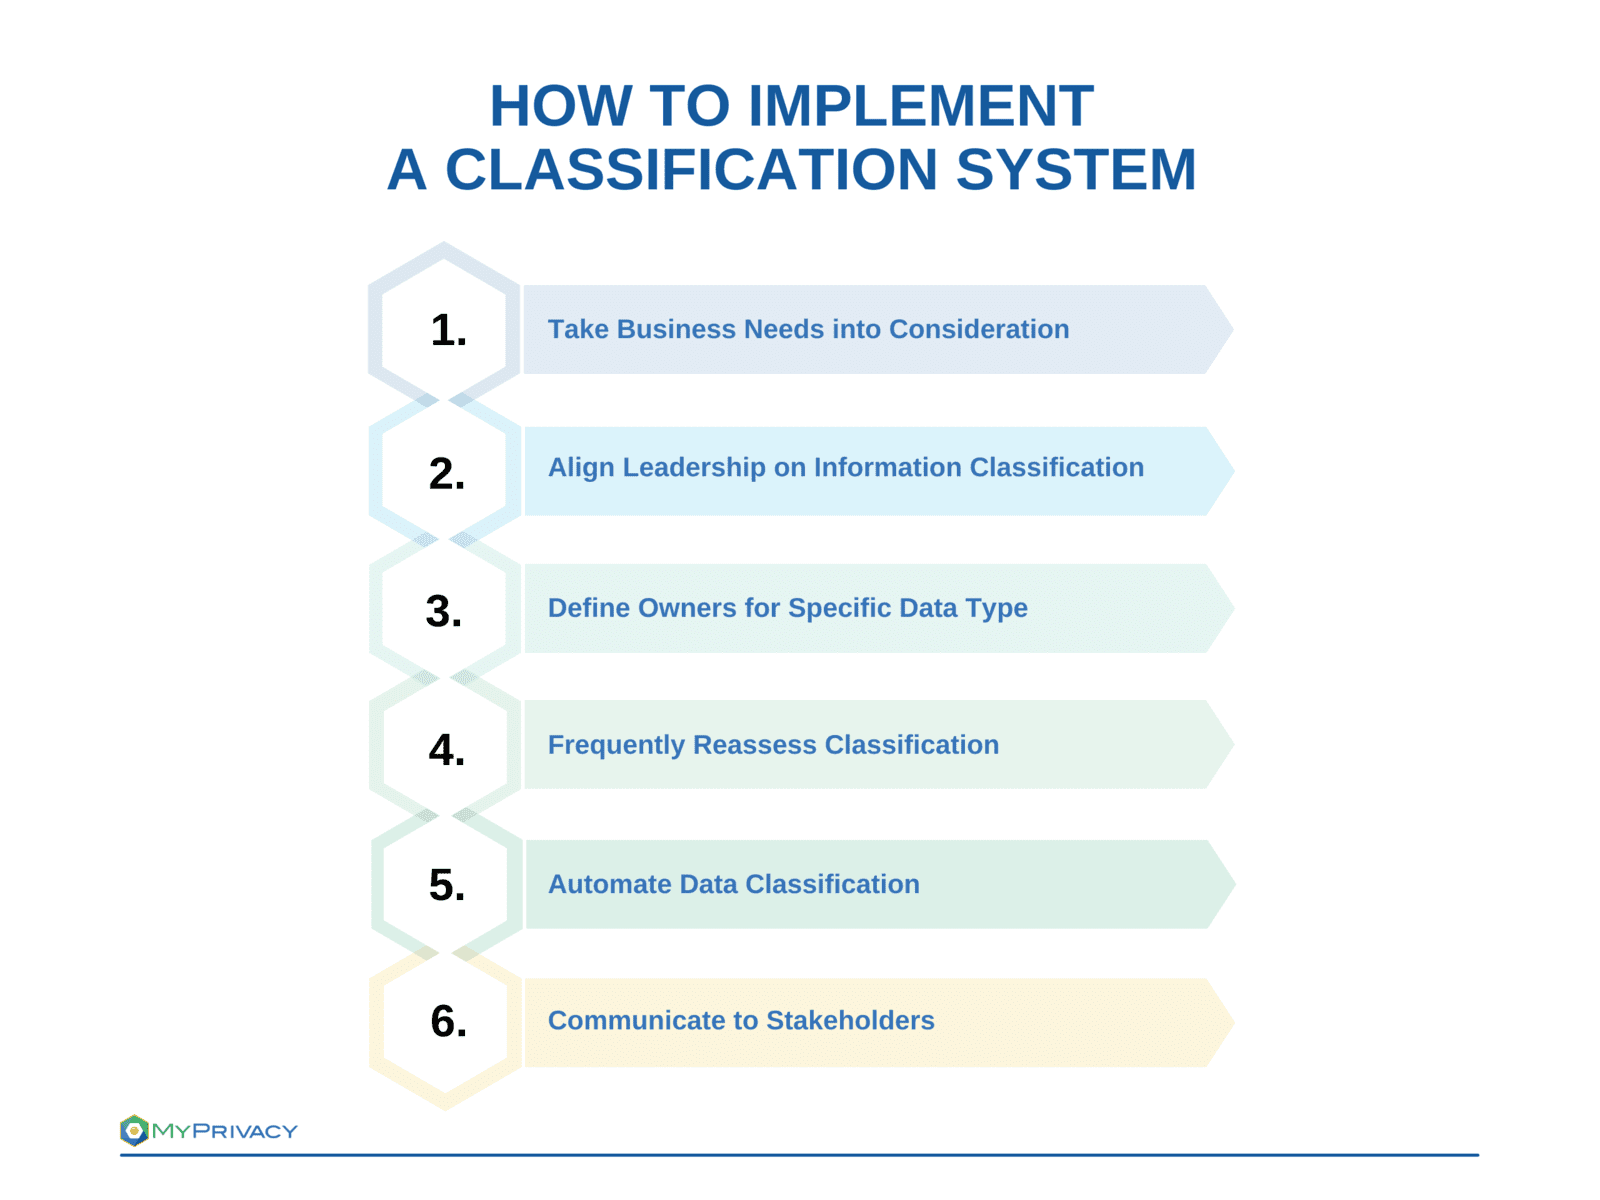 Tips how to implement a Classification Process